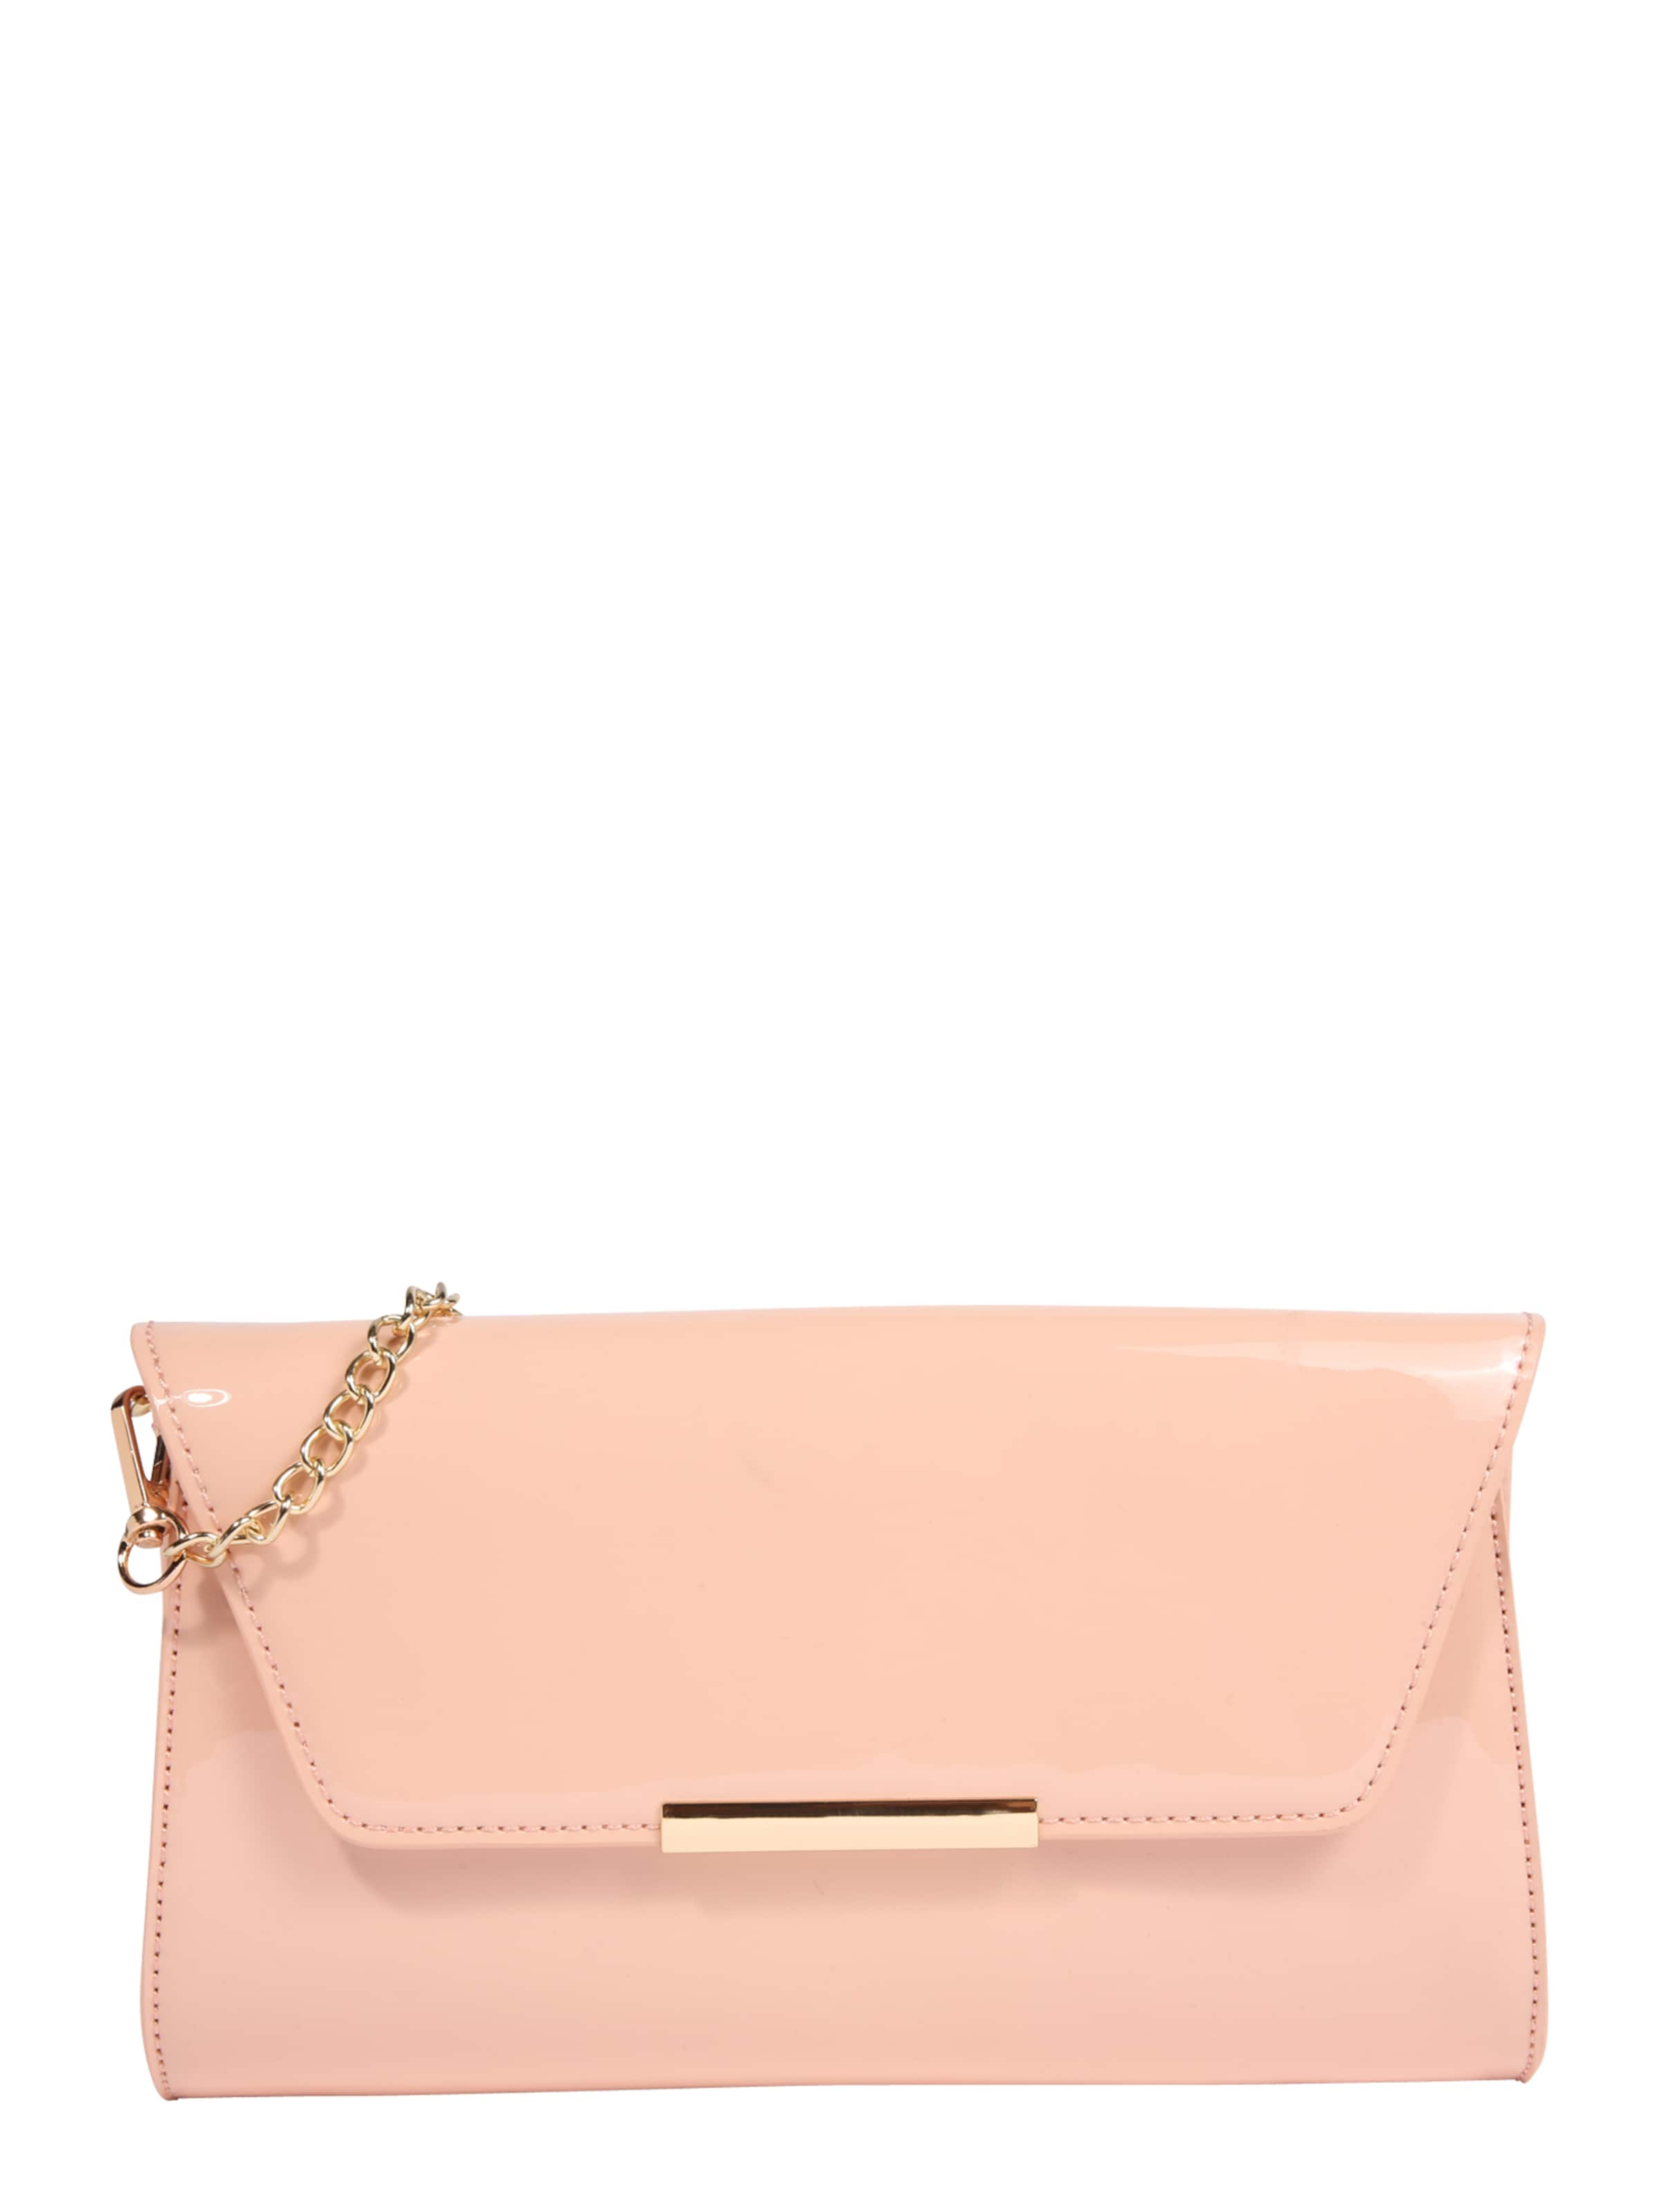 Nude About You Pochette En 'ariana' E9YWDH2I